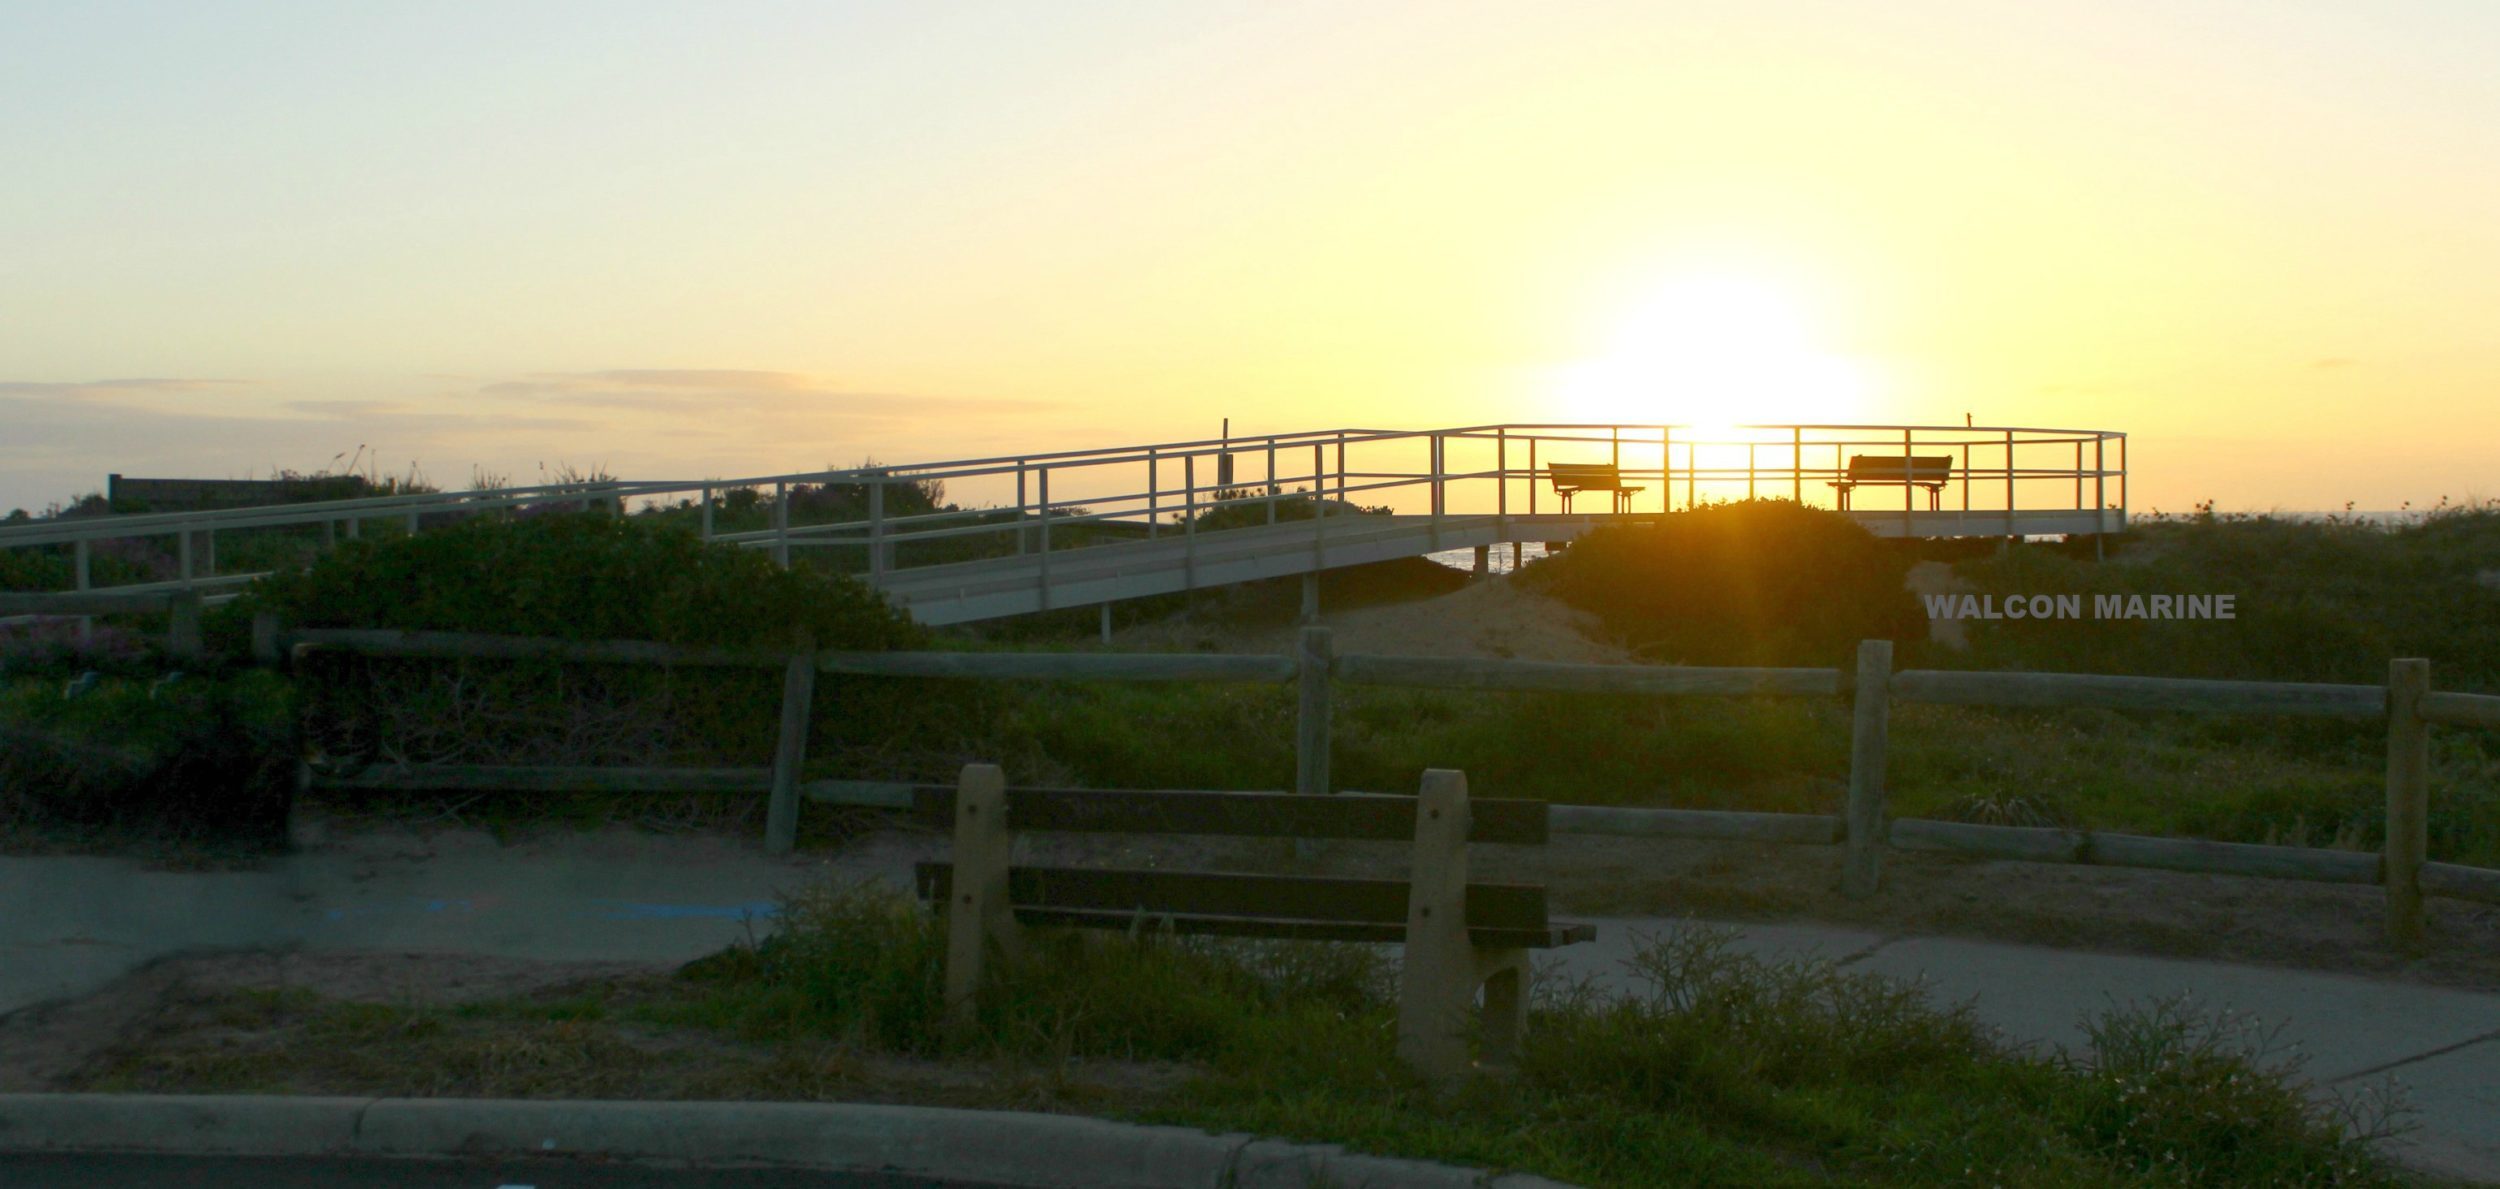 Walcon Marine Boardwalk